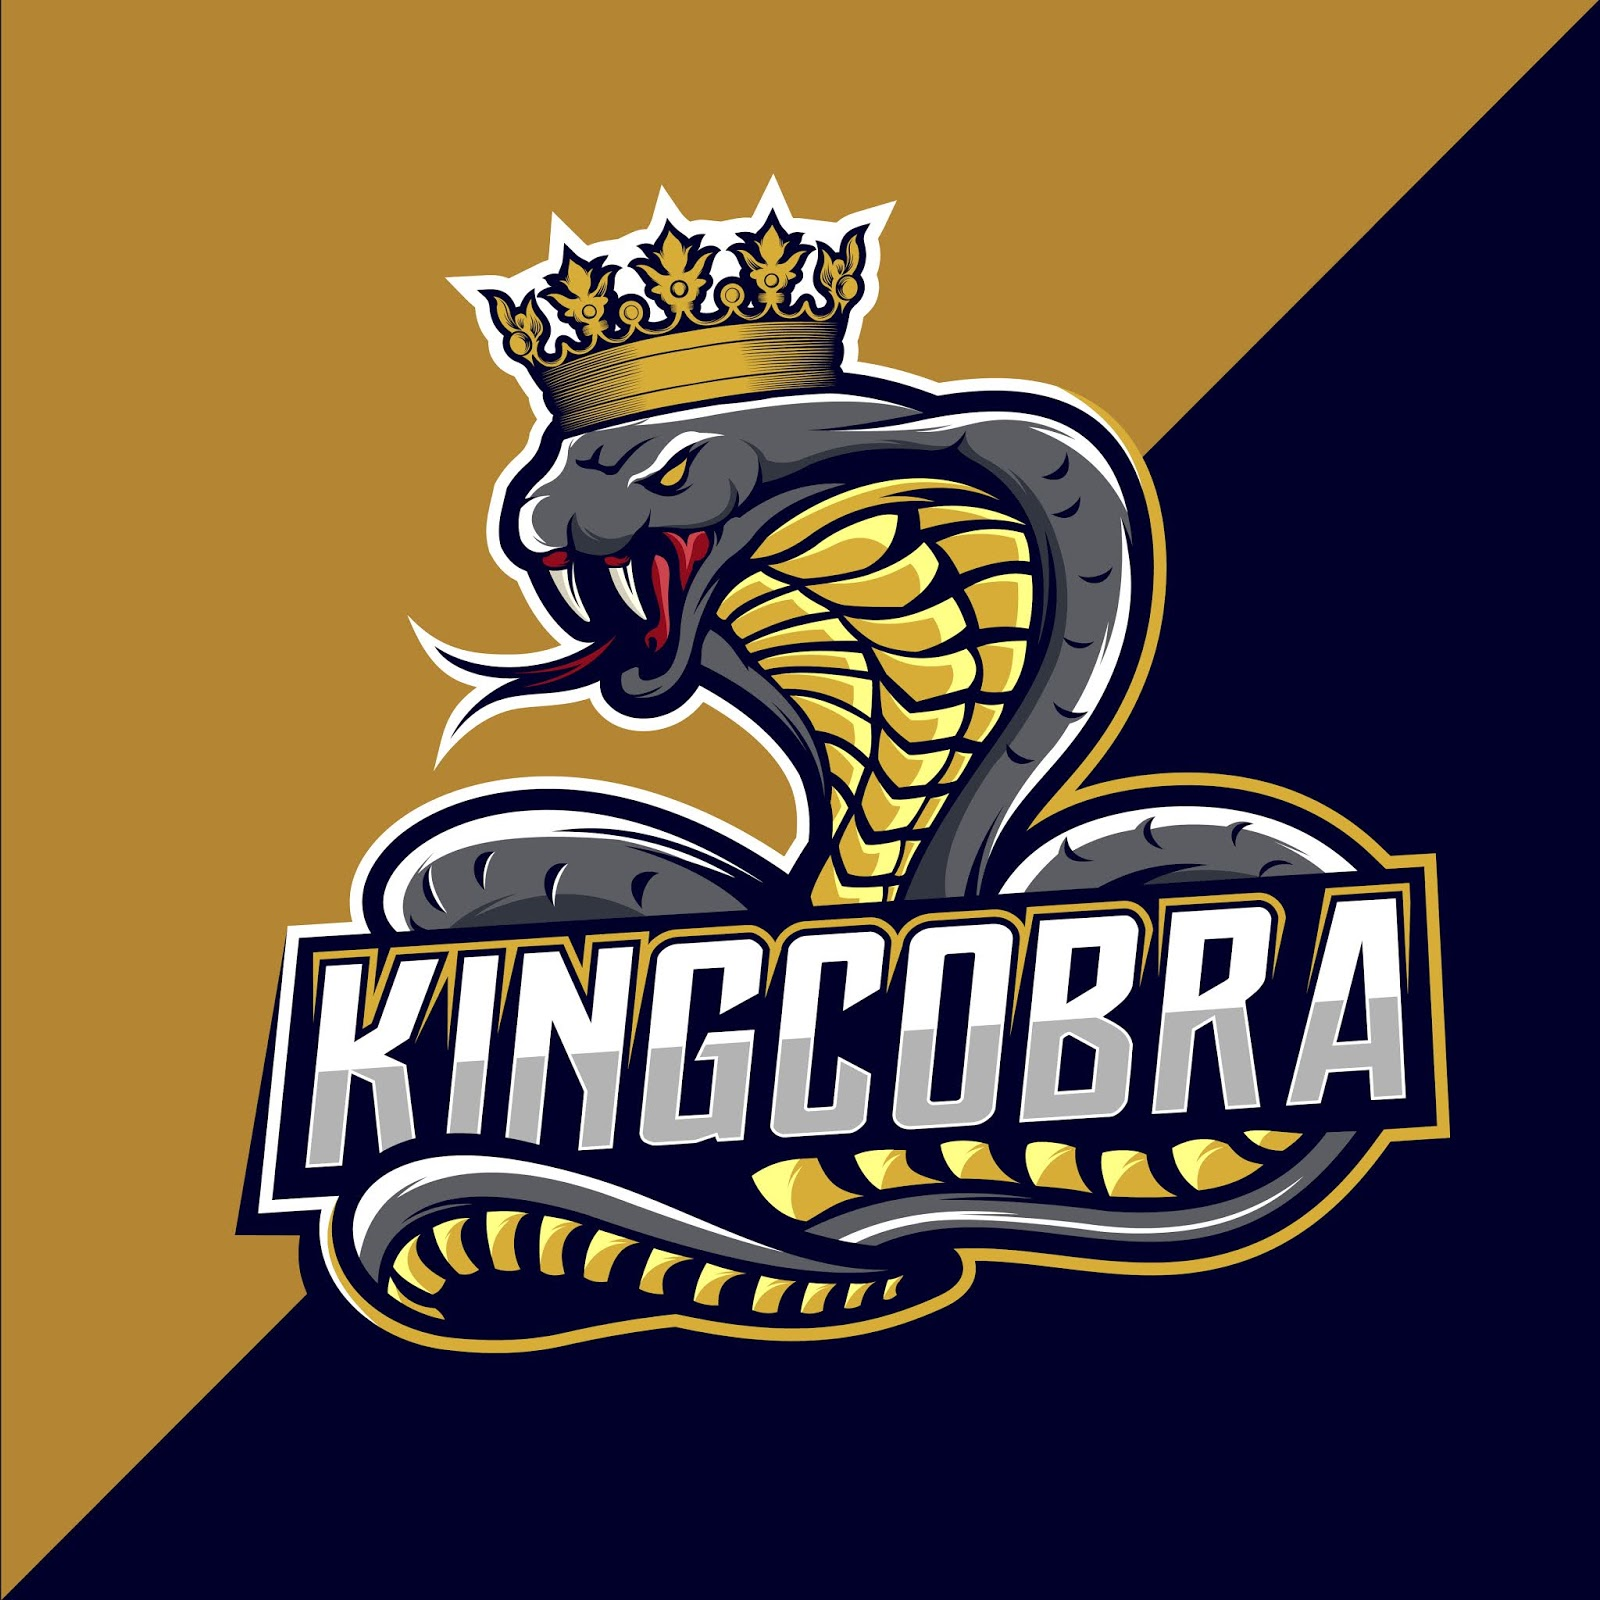 King Cobra Esport Logo Design Free Download Vector CDR, AI, EPS and PNG Formats